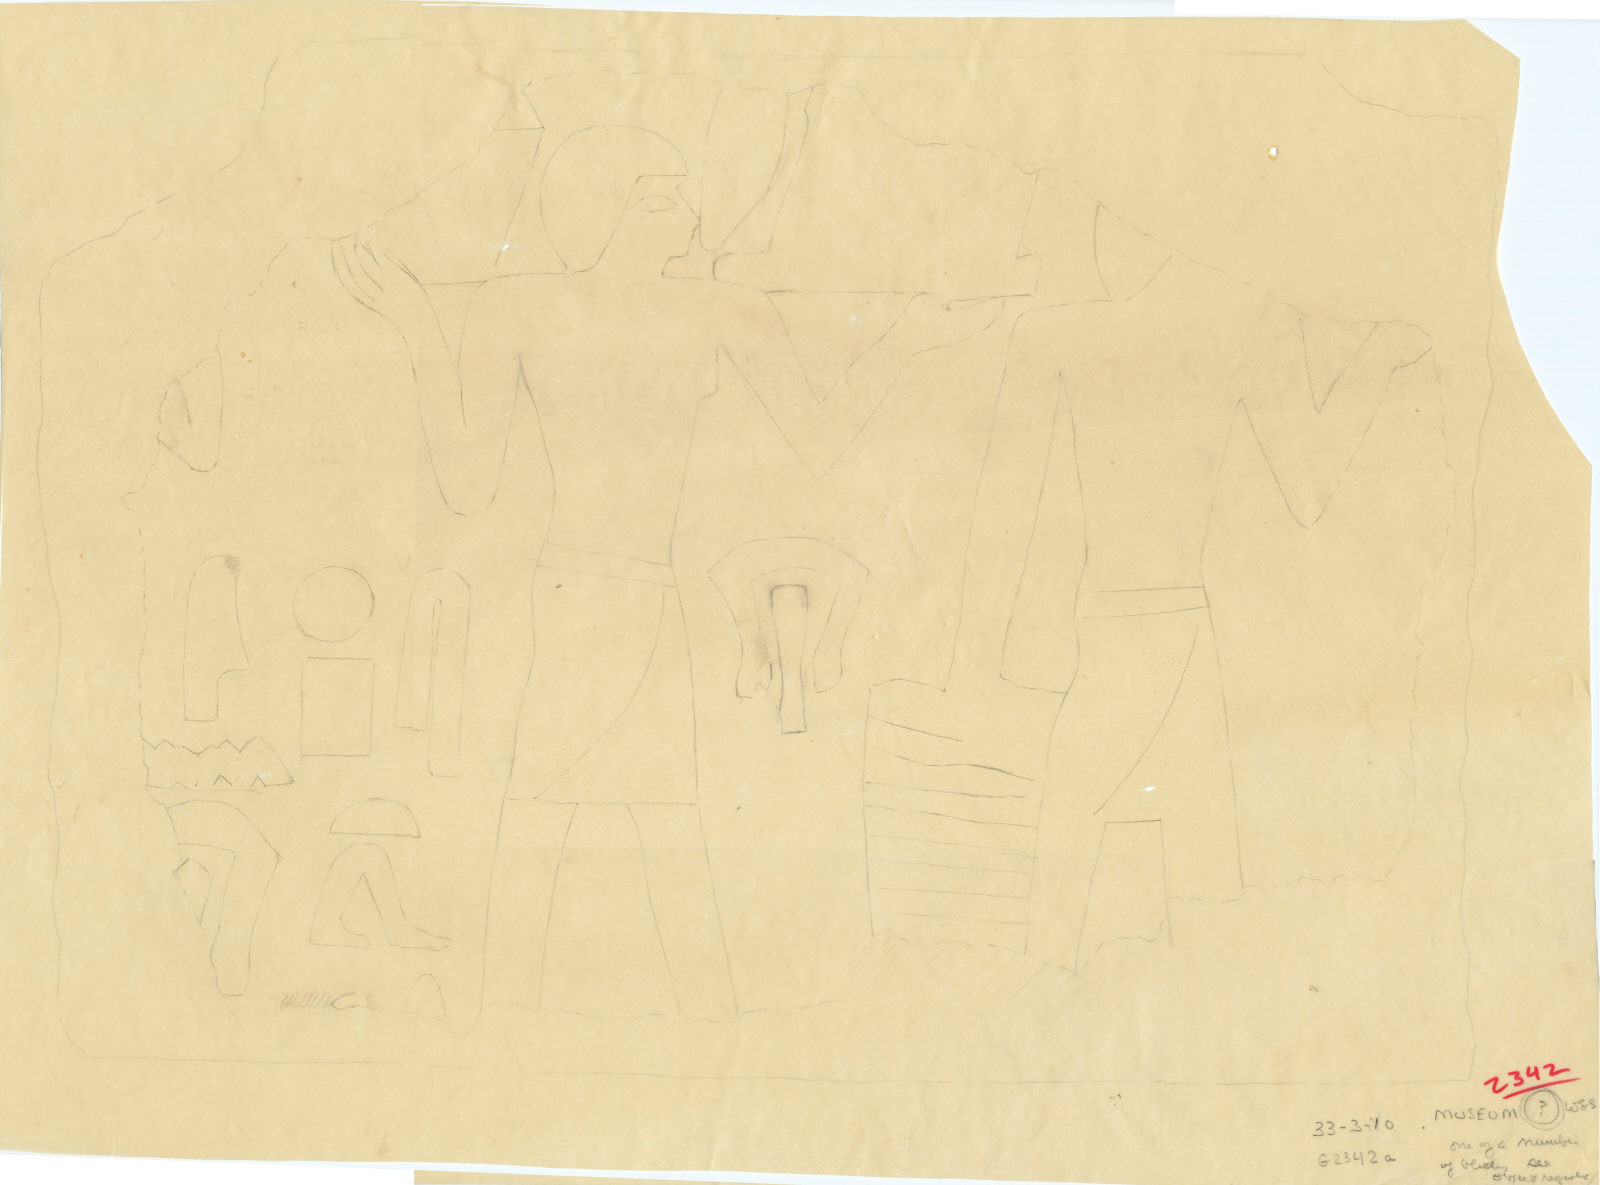 Drawings: G 2342 (= G 5520), Shaft A: fragment of relief